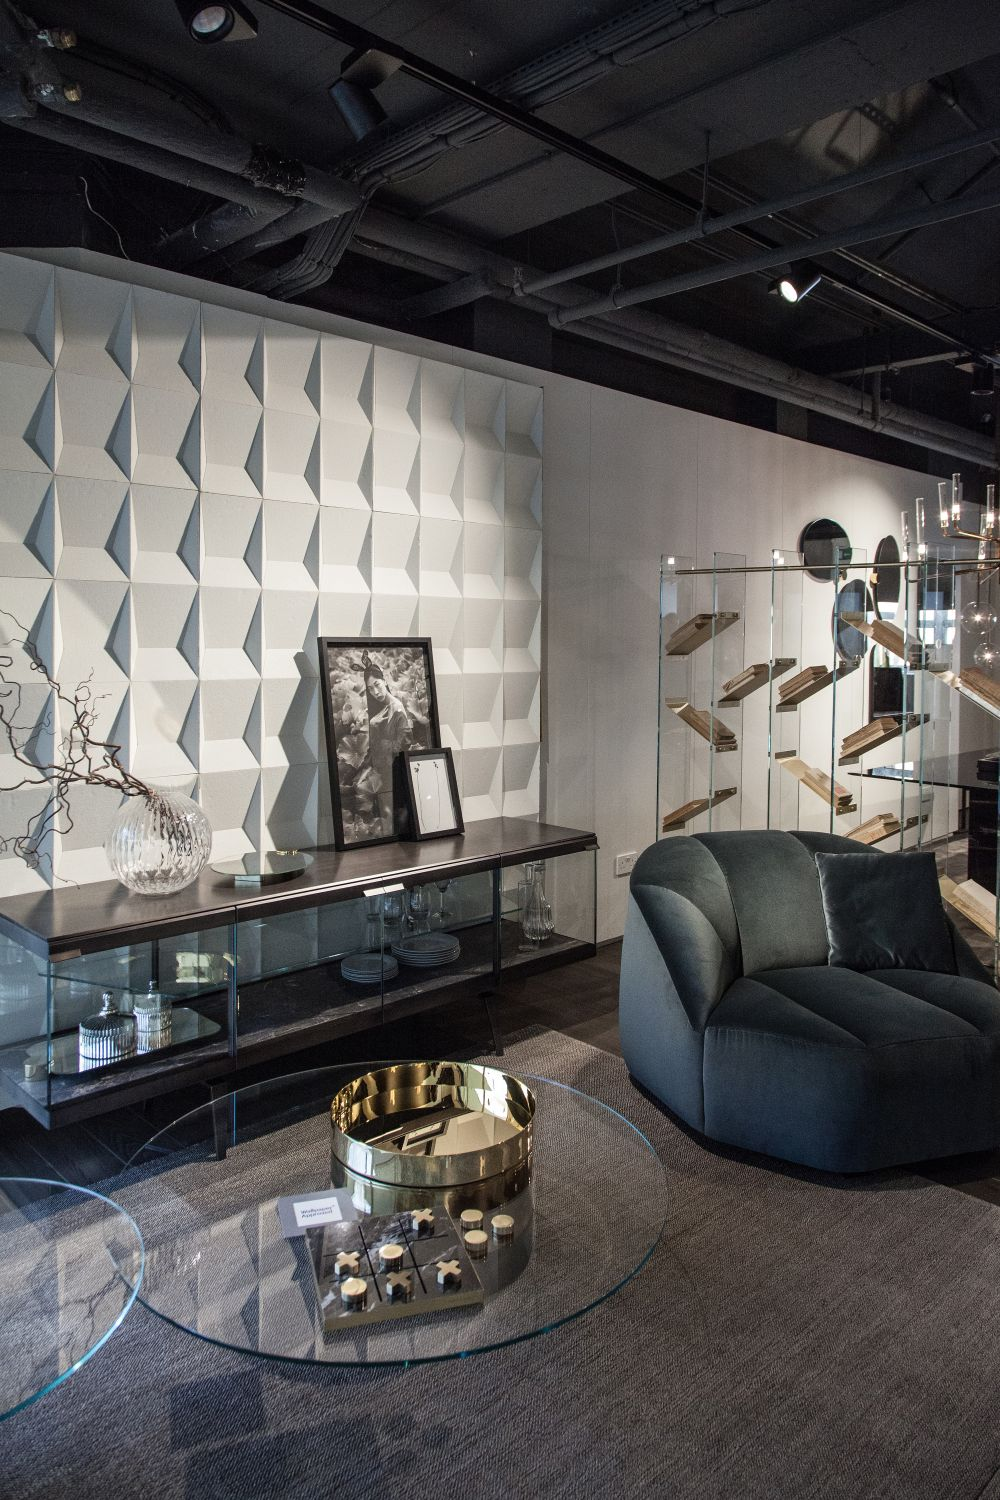 The Latest Trends Straight From Design Centre, Chelsea Harbour